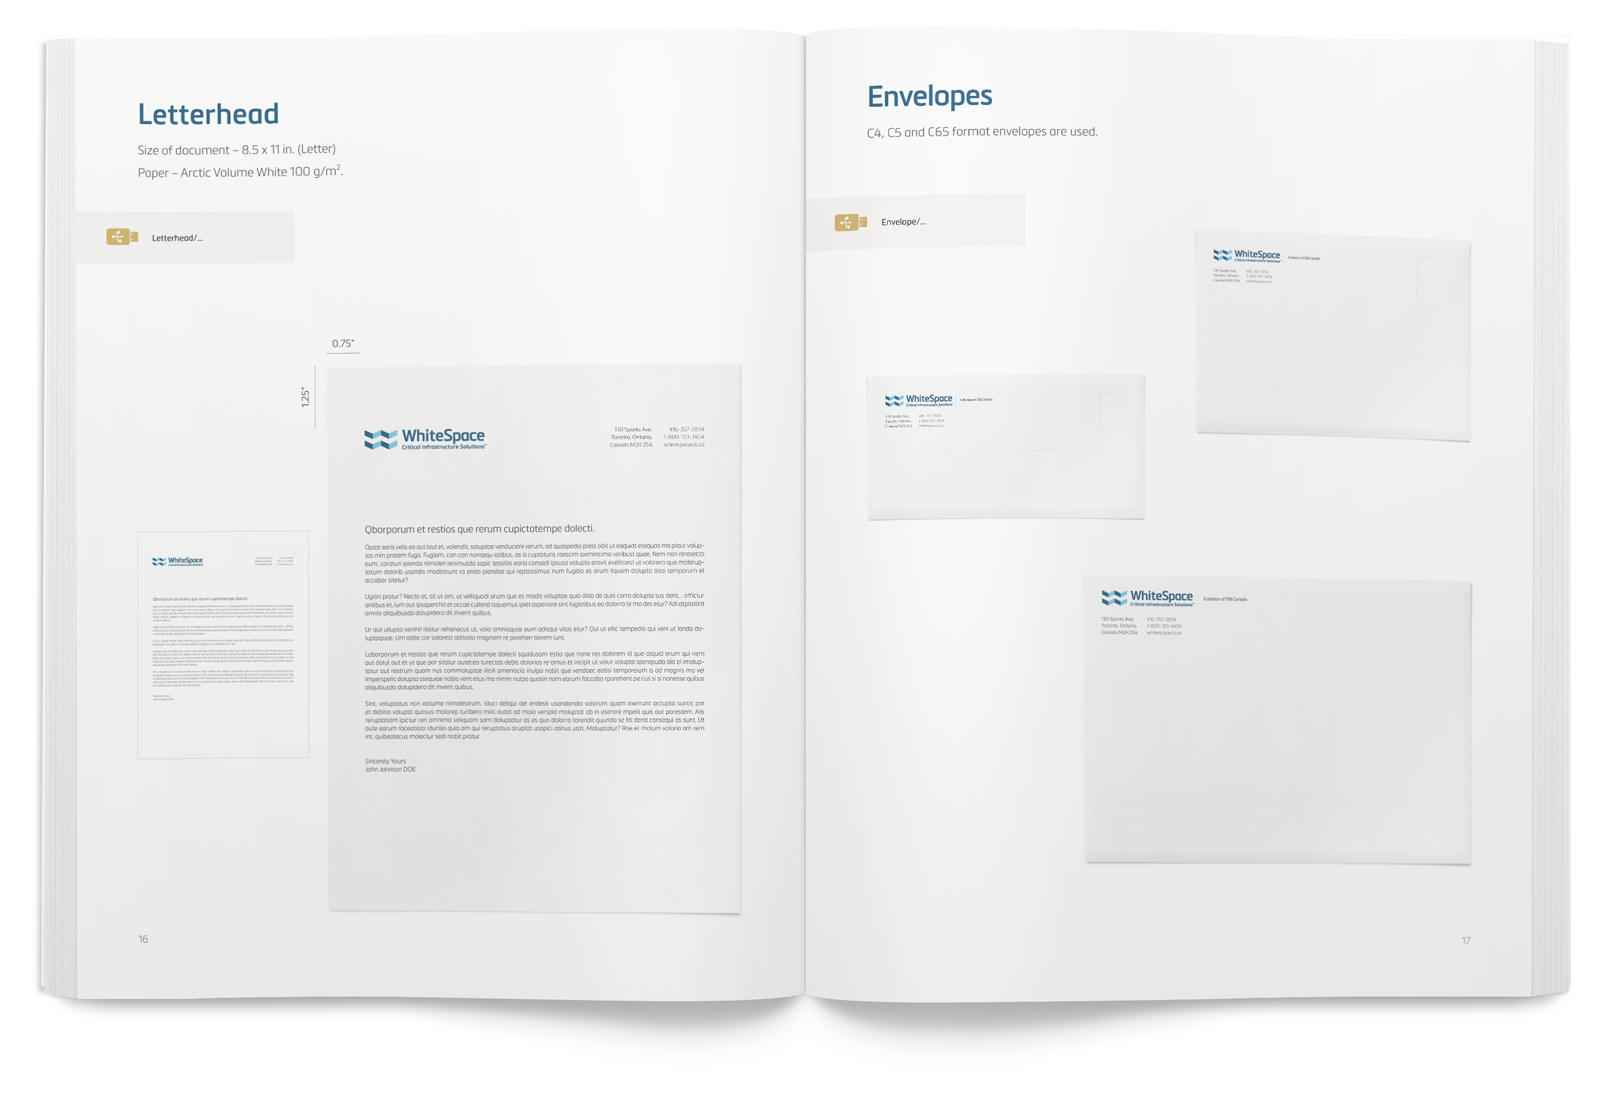 WhiteSpace Brand Guidelines